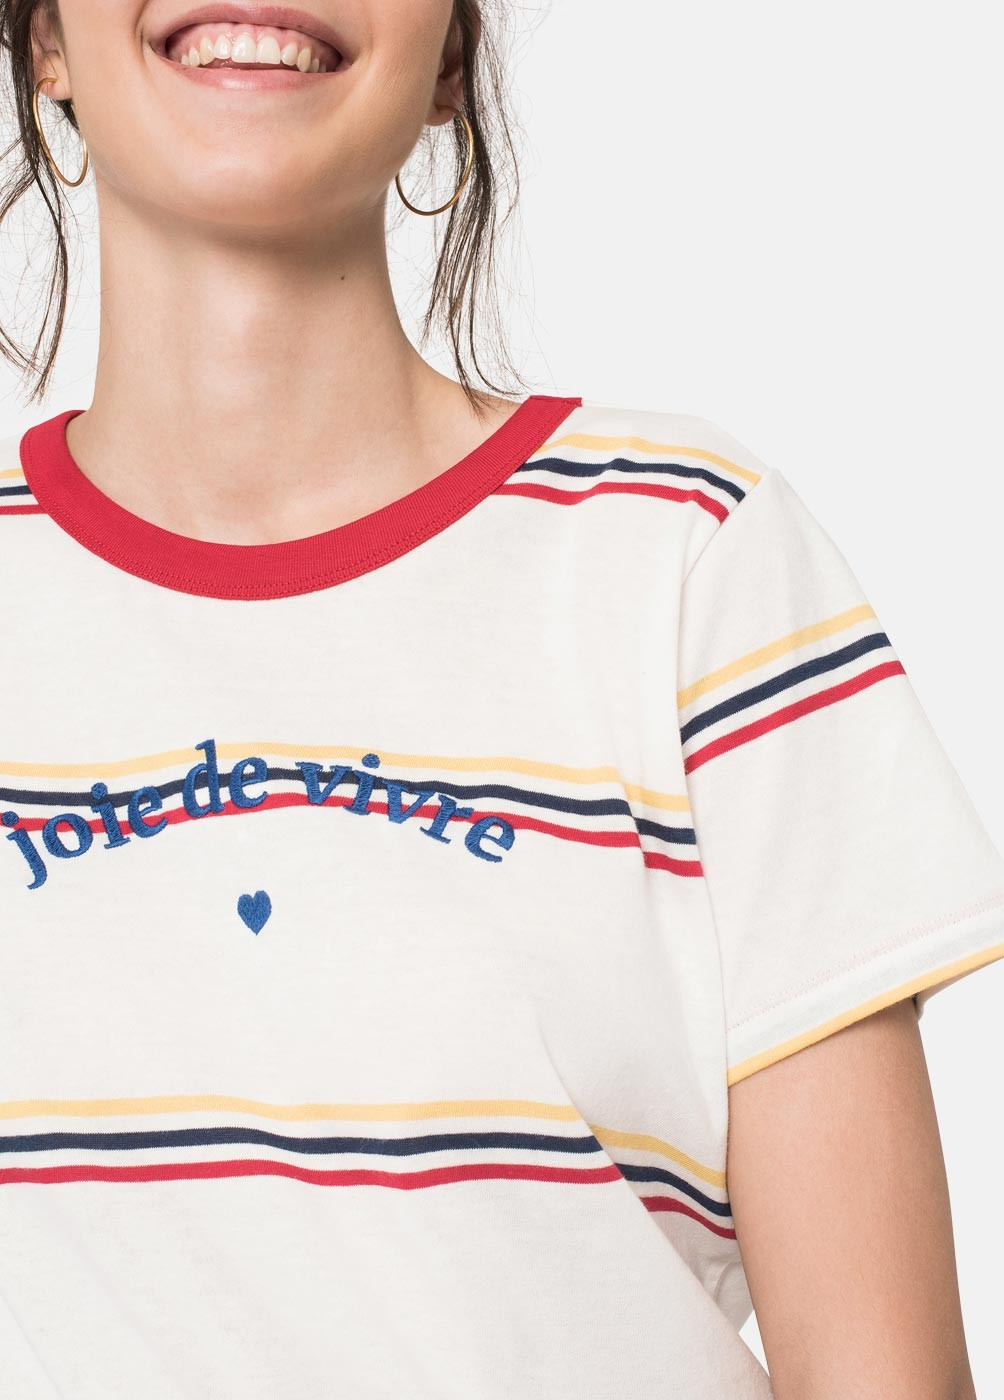 JOIE STRIPED T-SHIRT